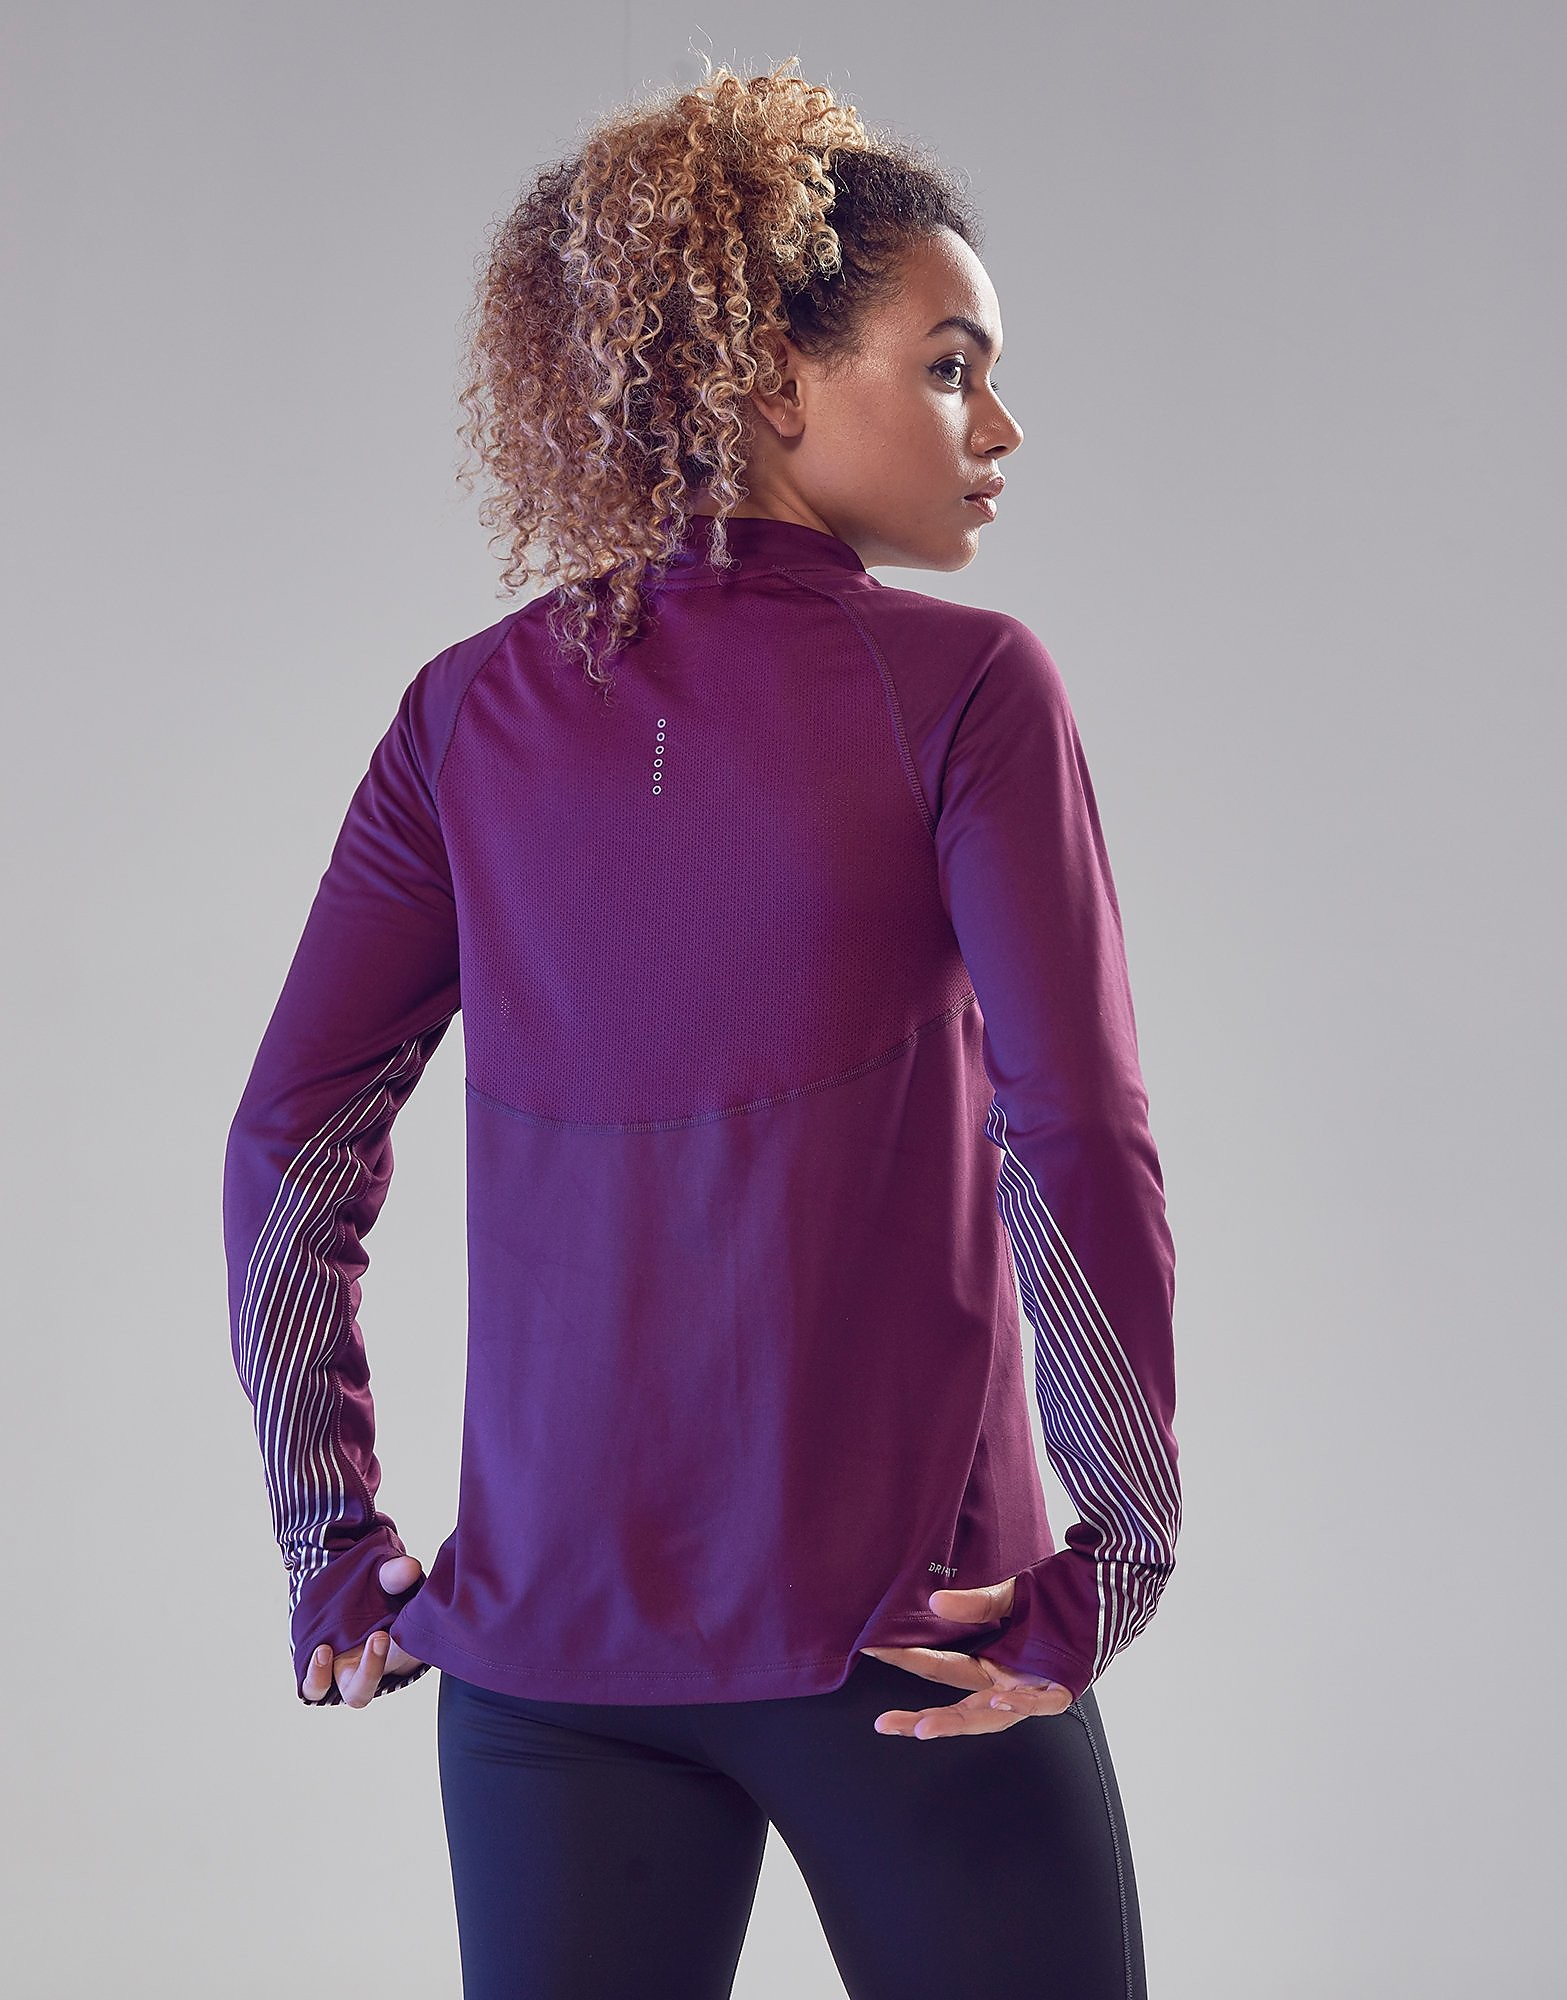 Nike Flash Half Zip Running Top